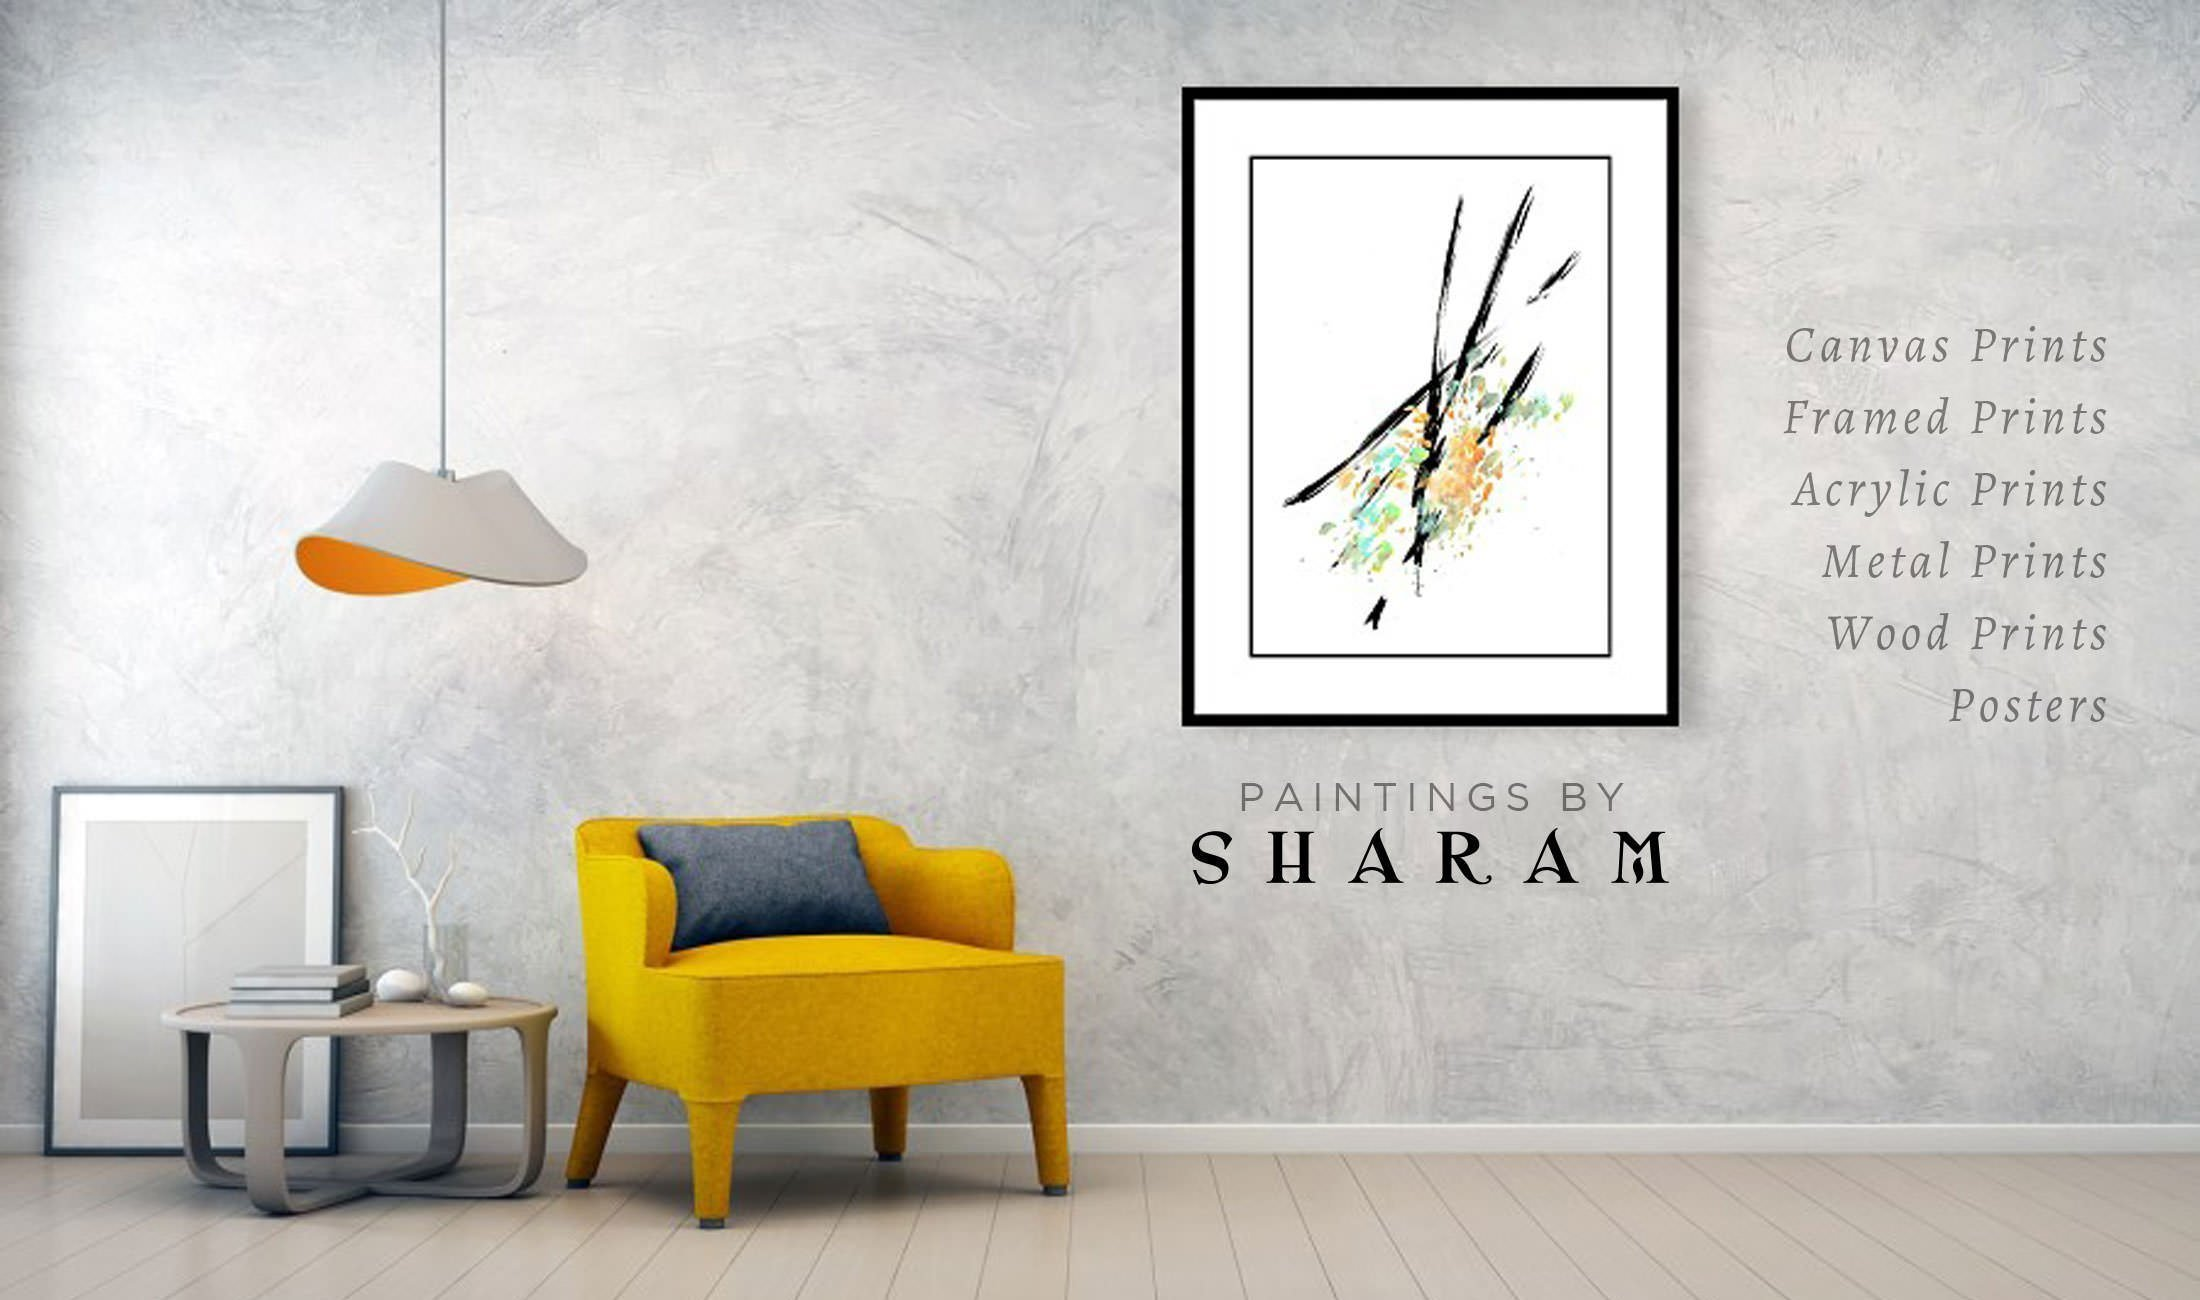 Sharam Paintings - Art Prints